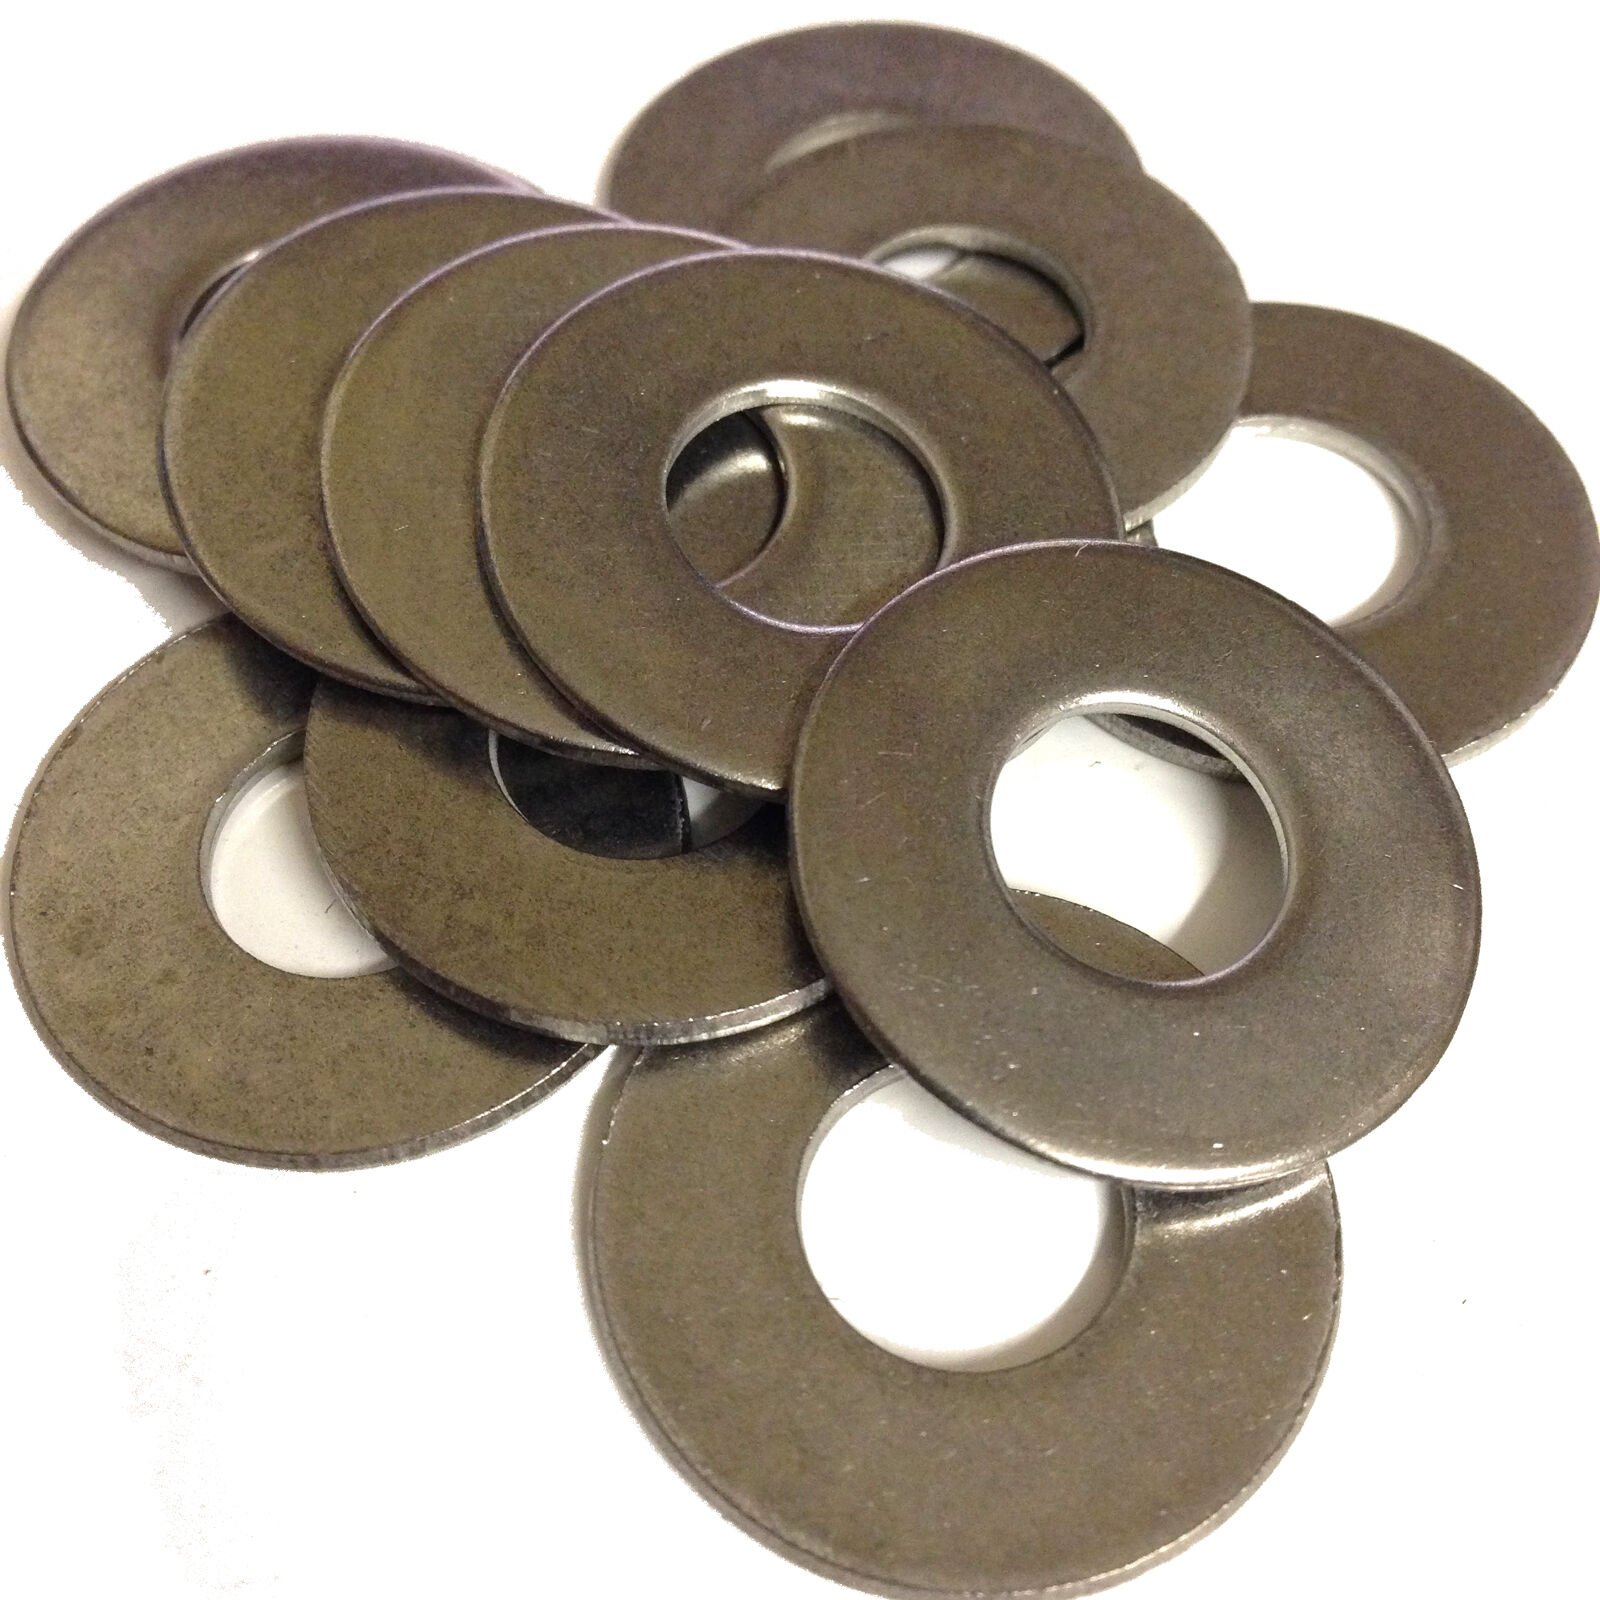 M12 x 35mm A2 STAINLESS STEEL FLAT PENNY / MUDGUARD / REPAIR WASHER, BIKE, QUAD